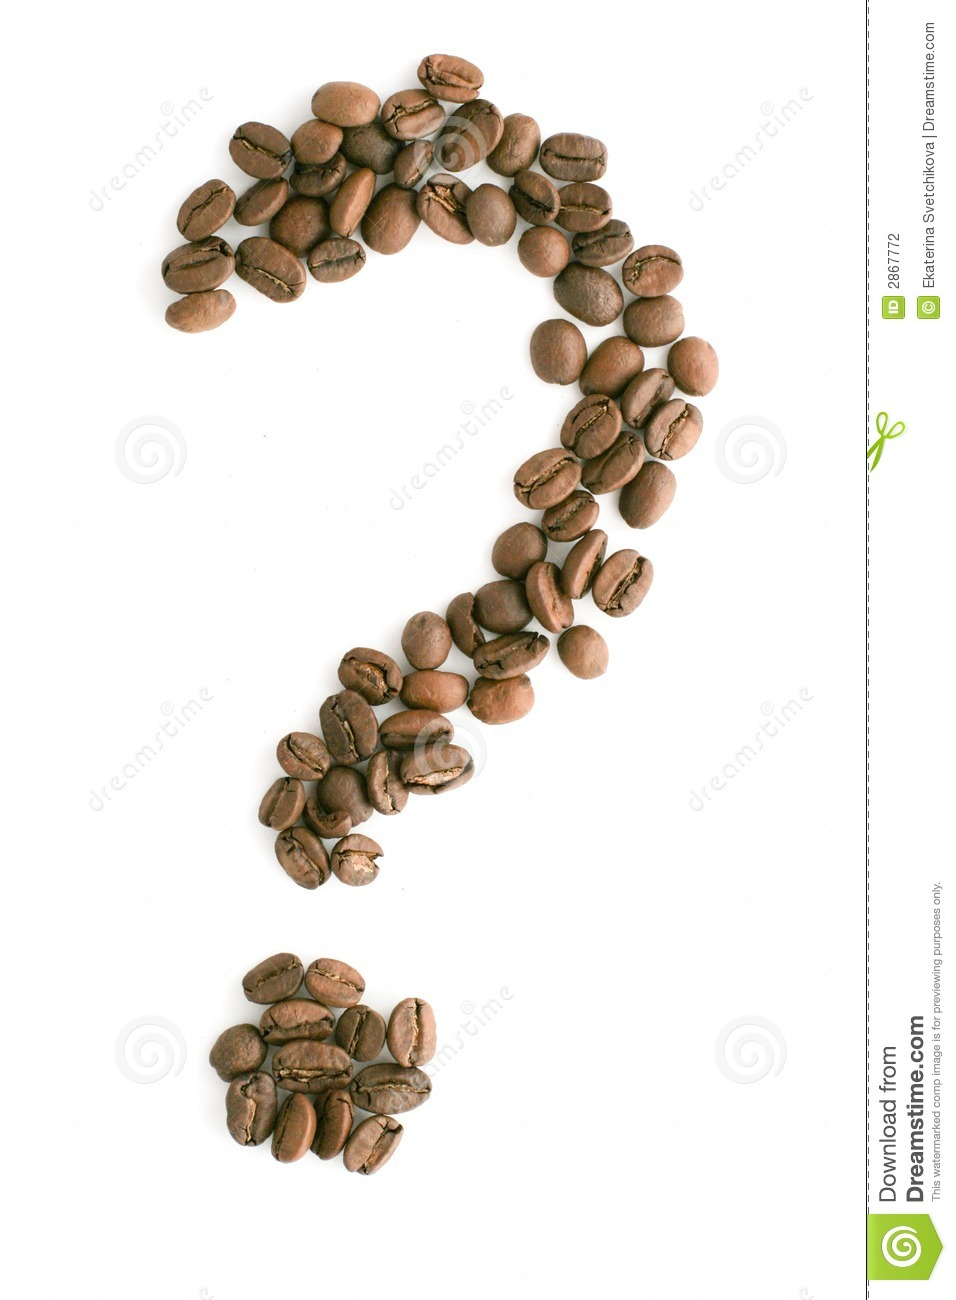 Arabica and Robusta tree